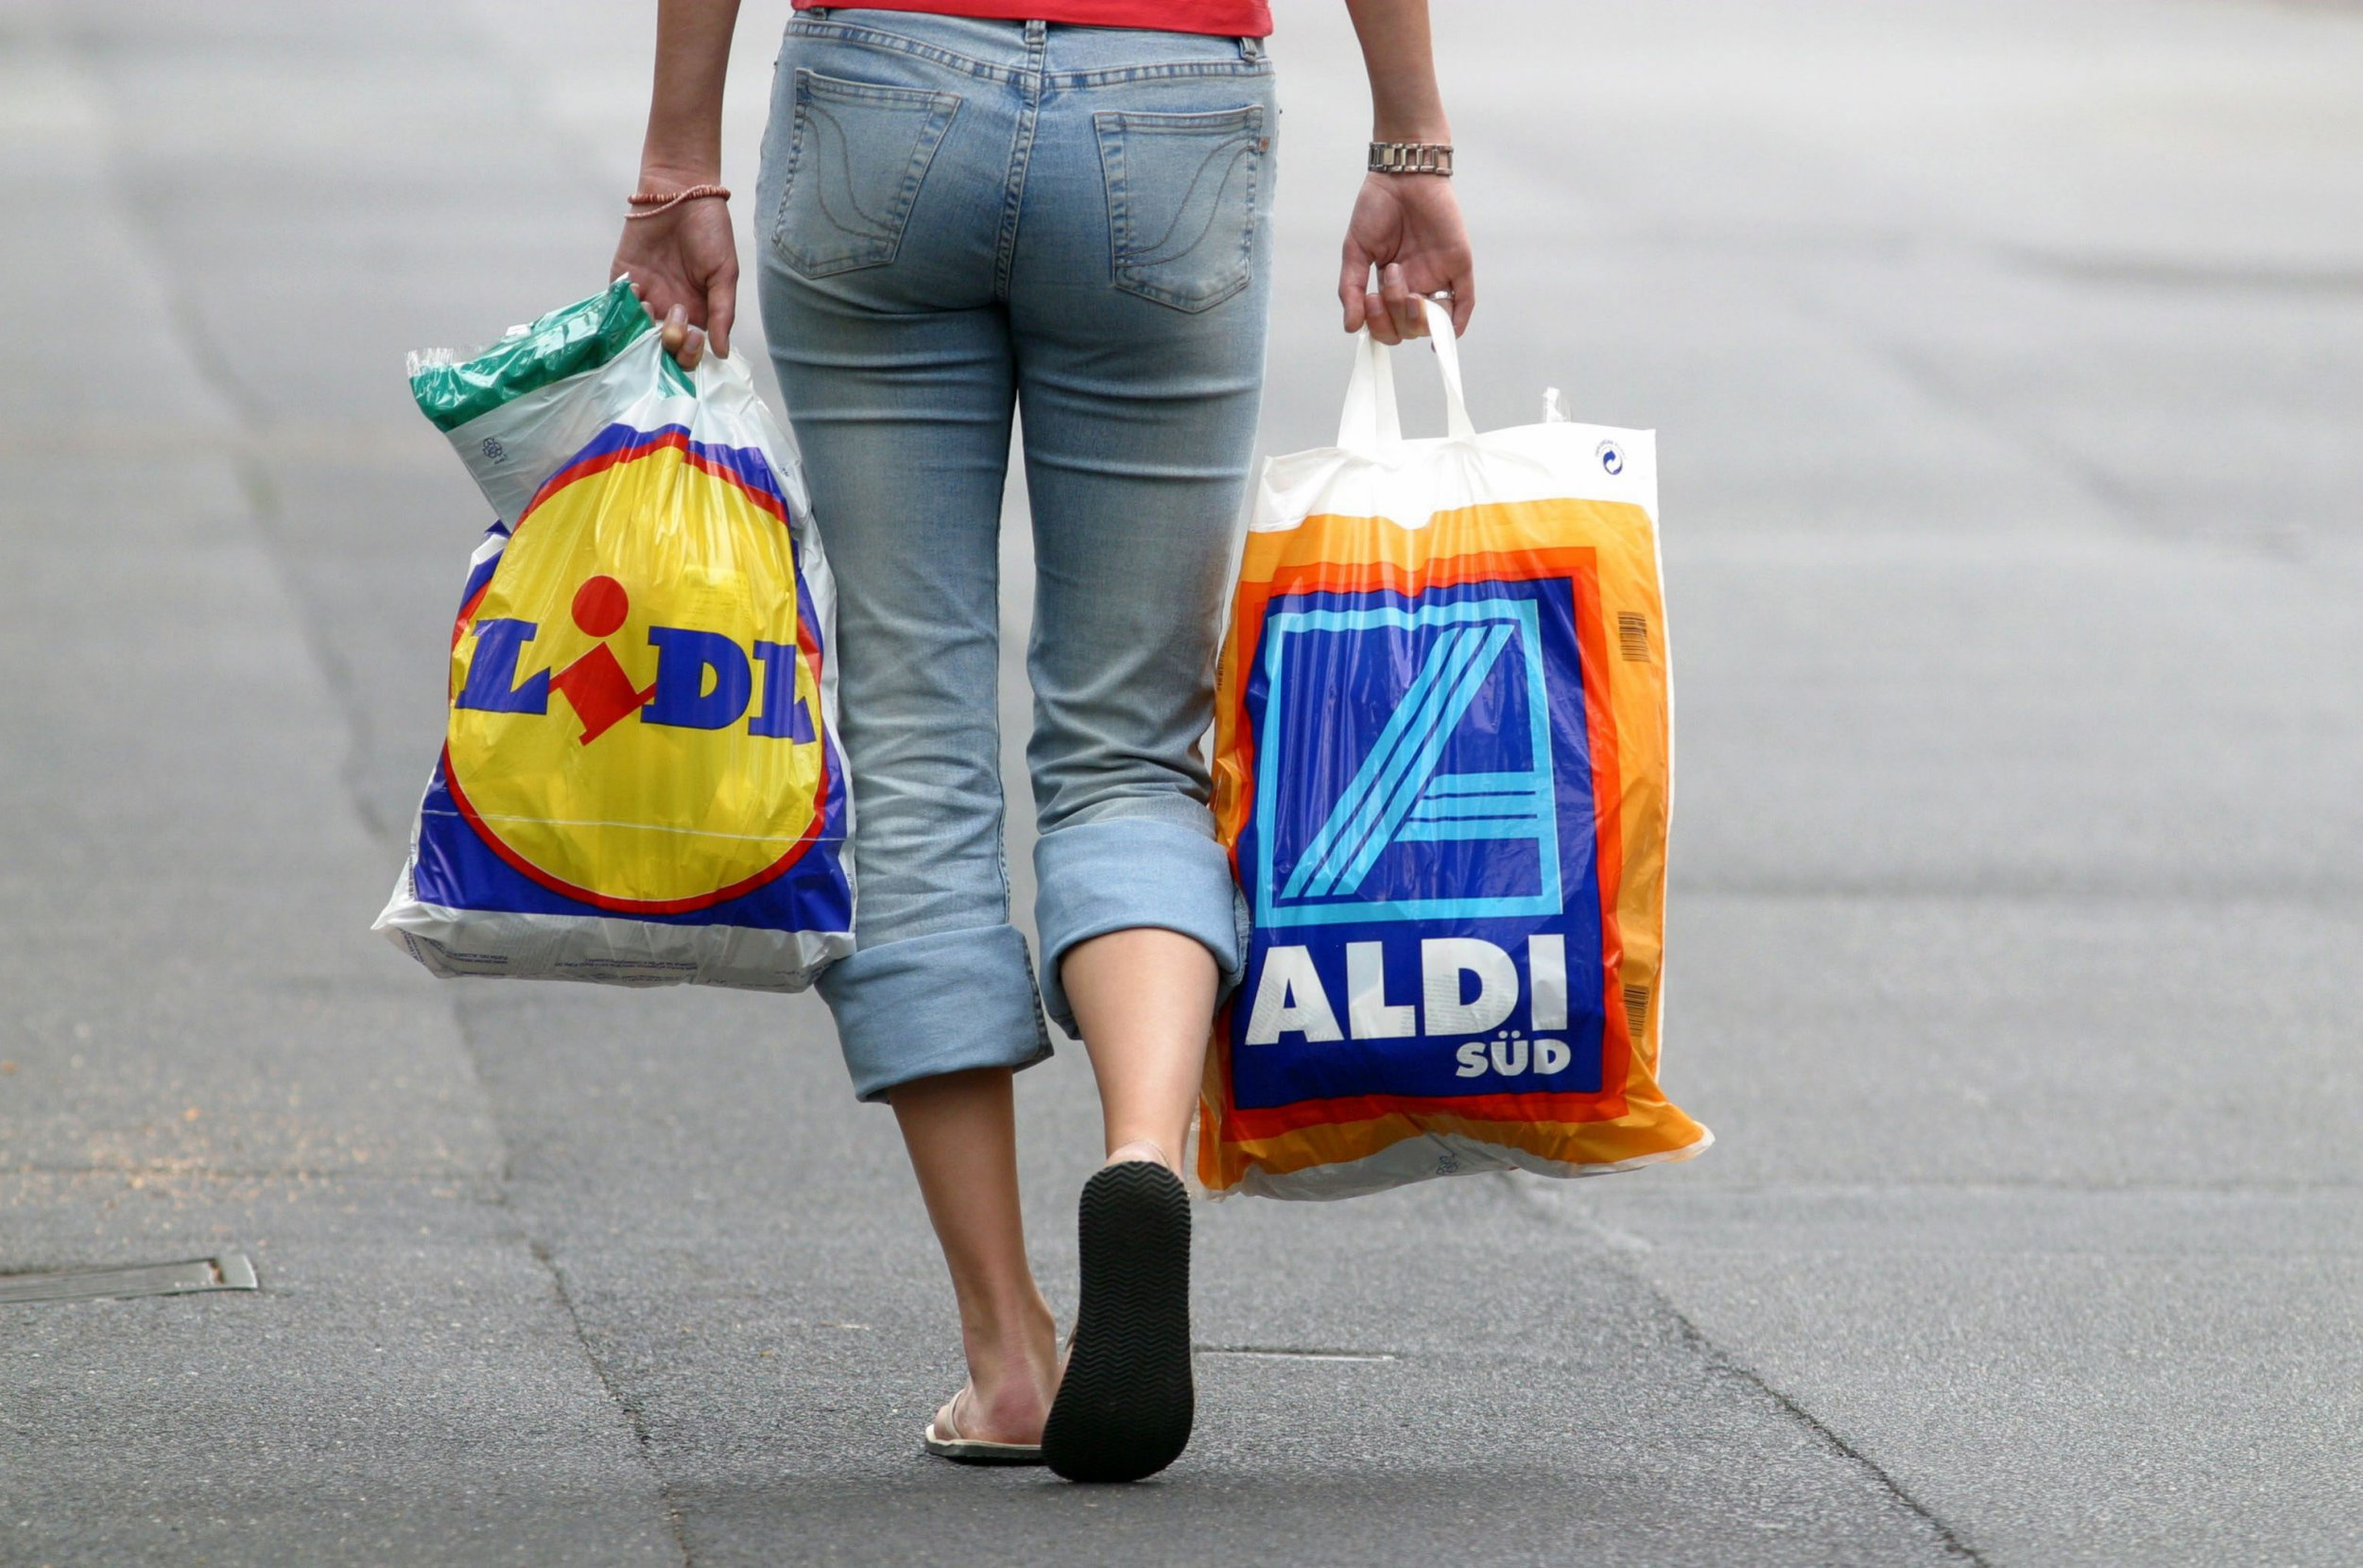 House prices near Aldi and Lidl surge to record highs